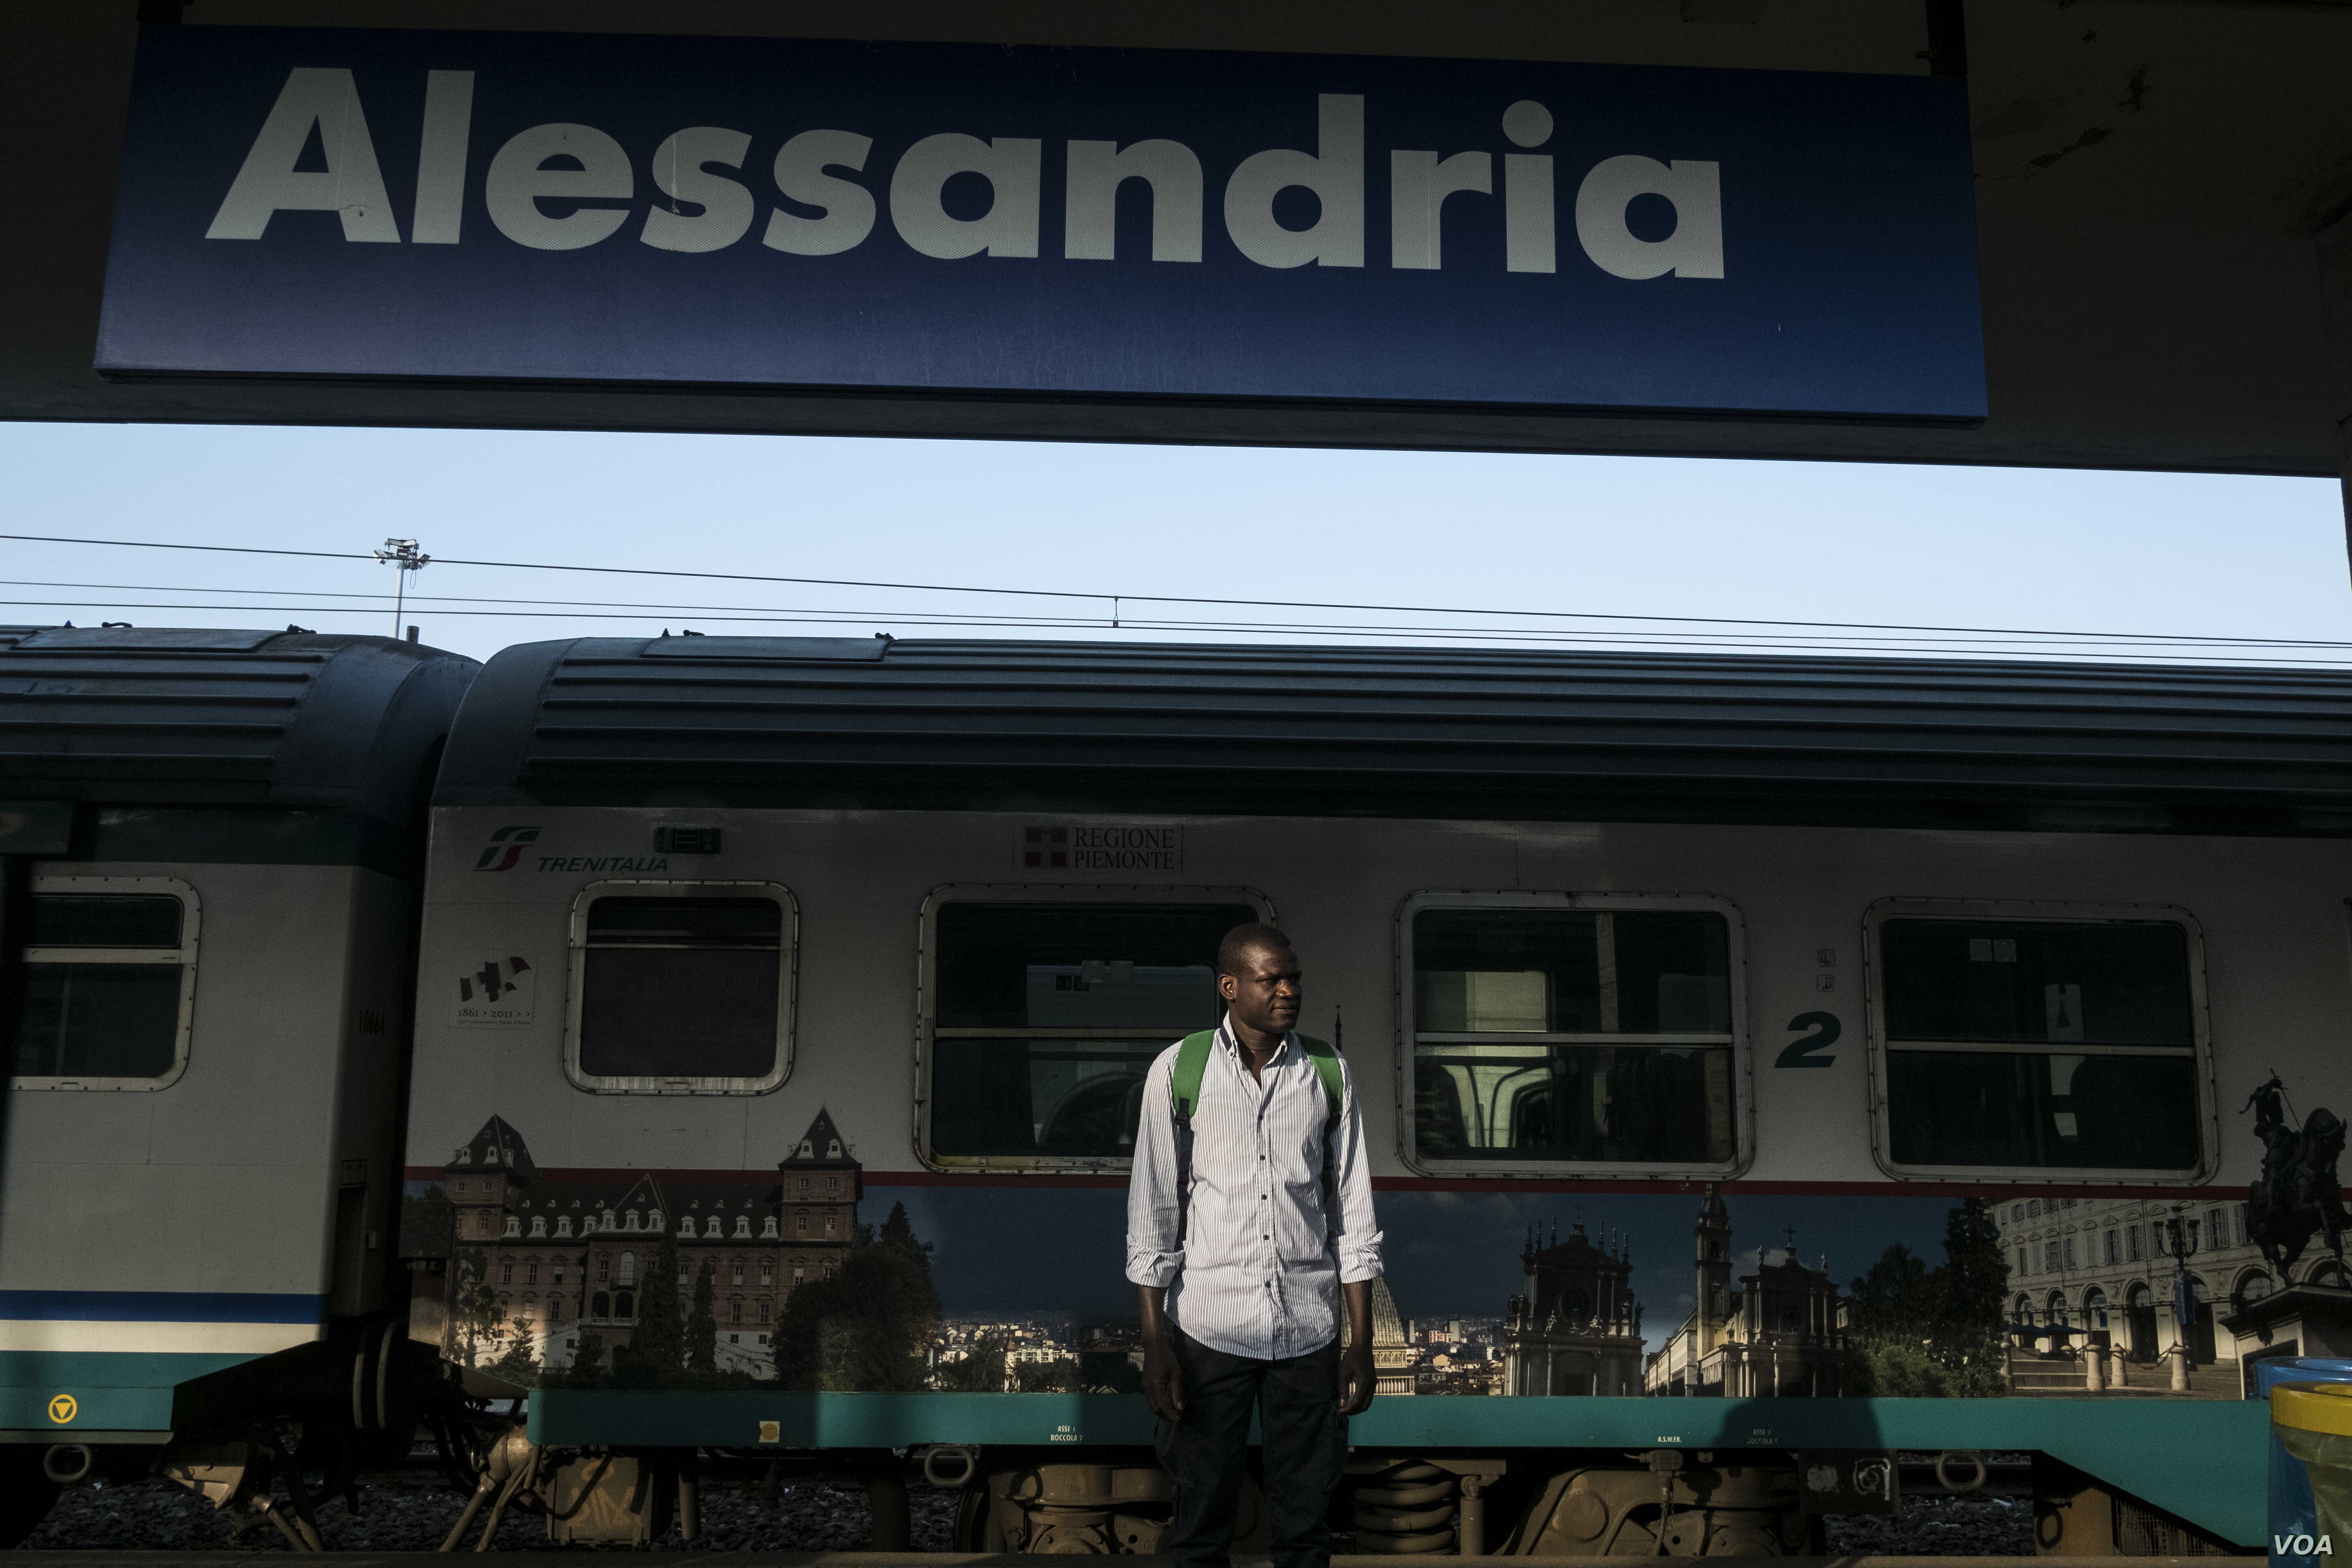 """Every morning, Abdul Adan takes a 20-minute train ride to Alessandria, Italy, where he works with bee hives and in an organic garden to sell produce, Aug. 22, 2017. """"I feel very lonely, very very,"""" he says."""